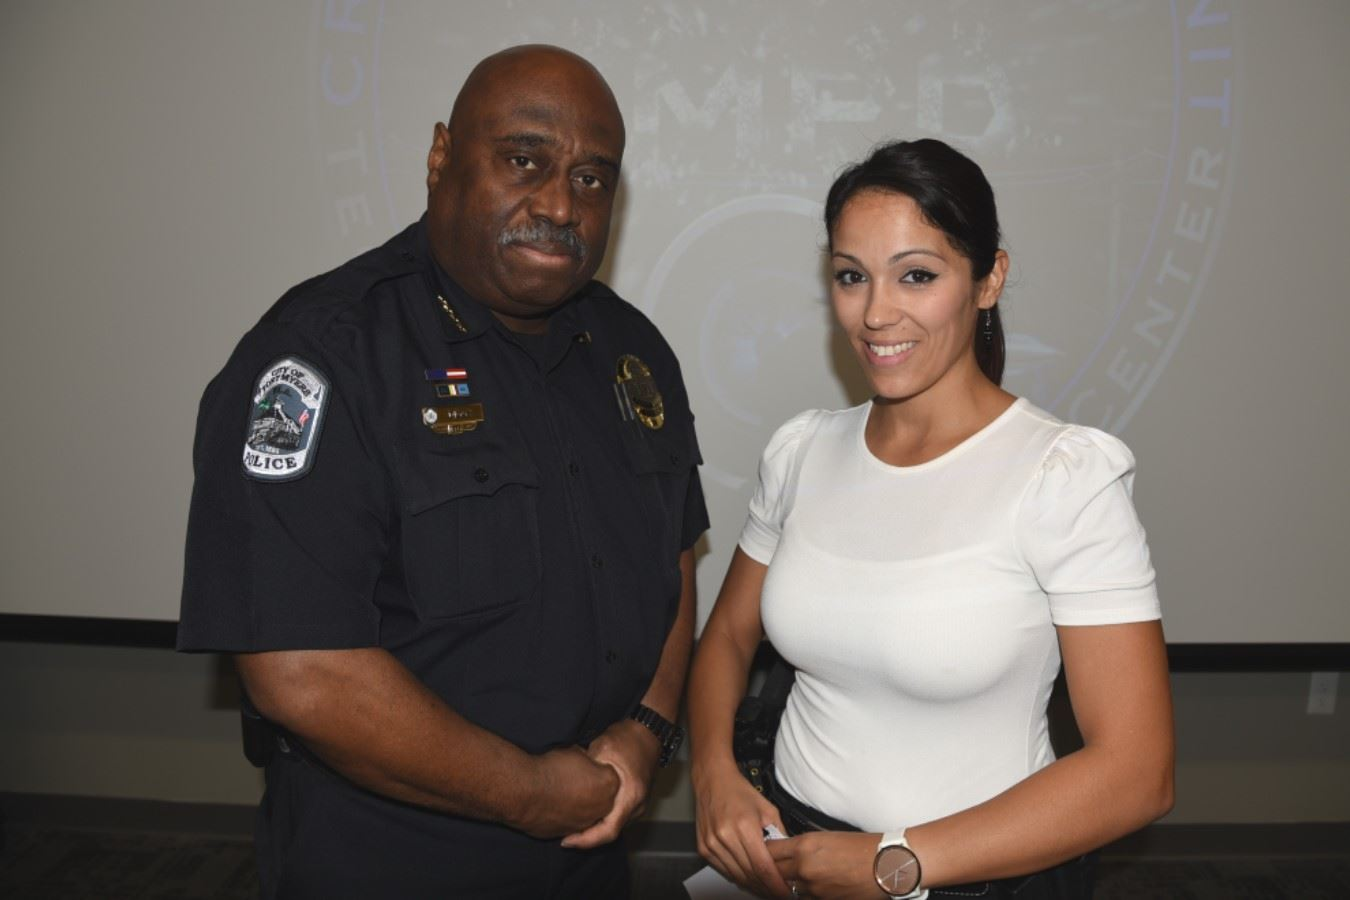 Chief Diggs-Rochelle Curr